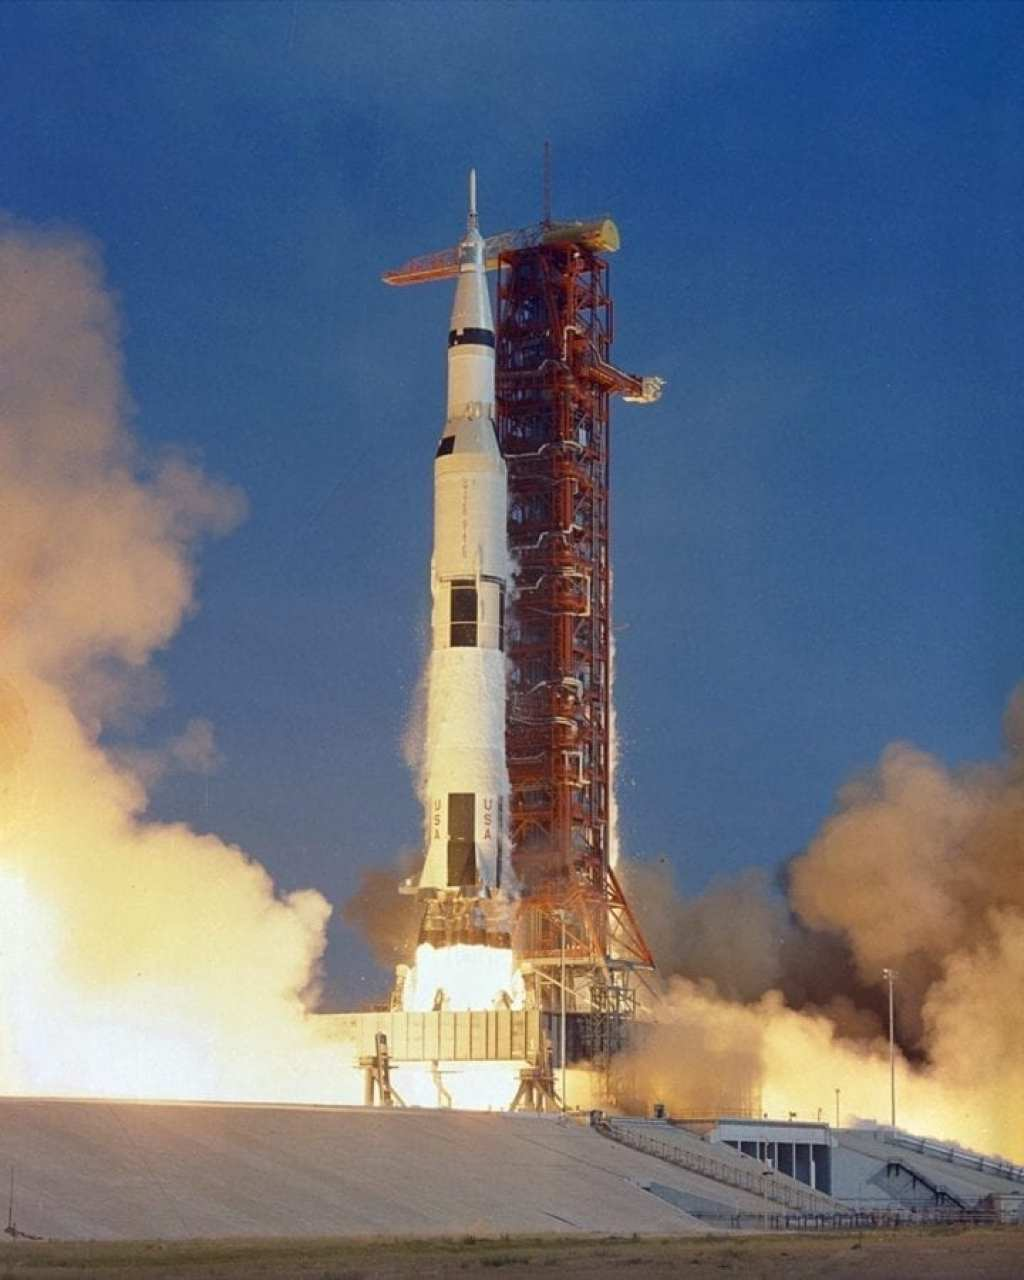 The Apollo 11 Saturn V space vehicle lifts off with astronauts Neil A. Armstrong, Michael Collins and Edwin E. Aldrin, Jr., at 9:32 a.m. EDT July 16, 1969, from Kennedy Space Center's Launch Complex 39A.